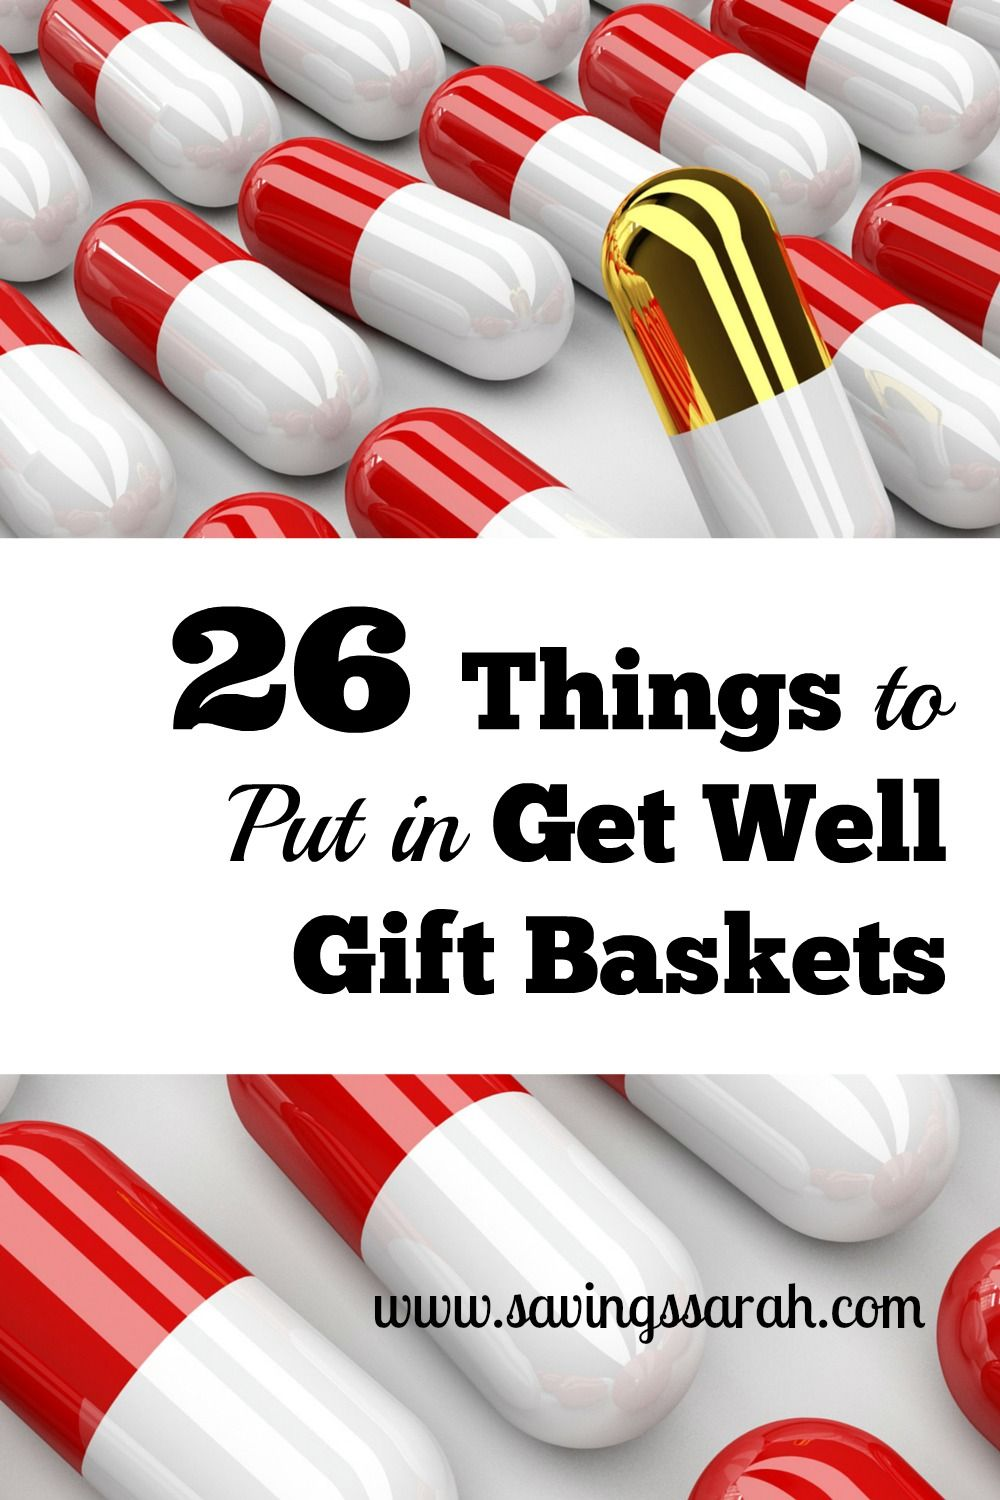 Do you have loved ones//friends who are ill or recovering from surgery? Get Well Gift Baskets are great ways to cheer them up and show them how much you ...